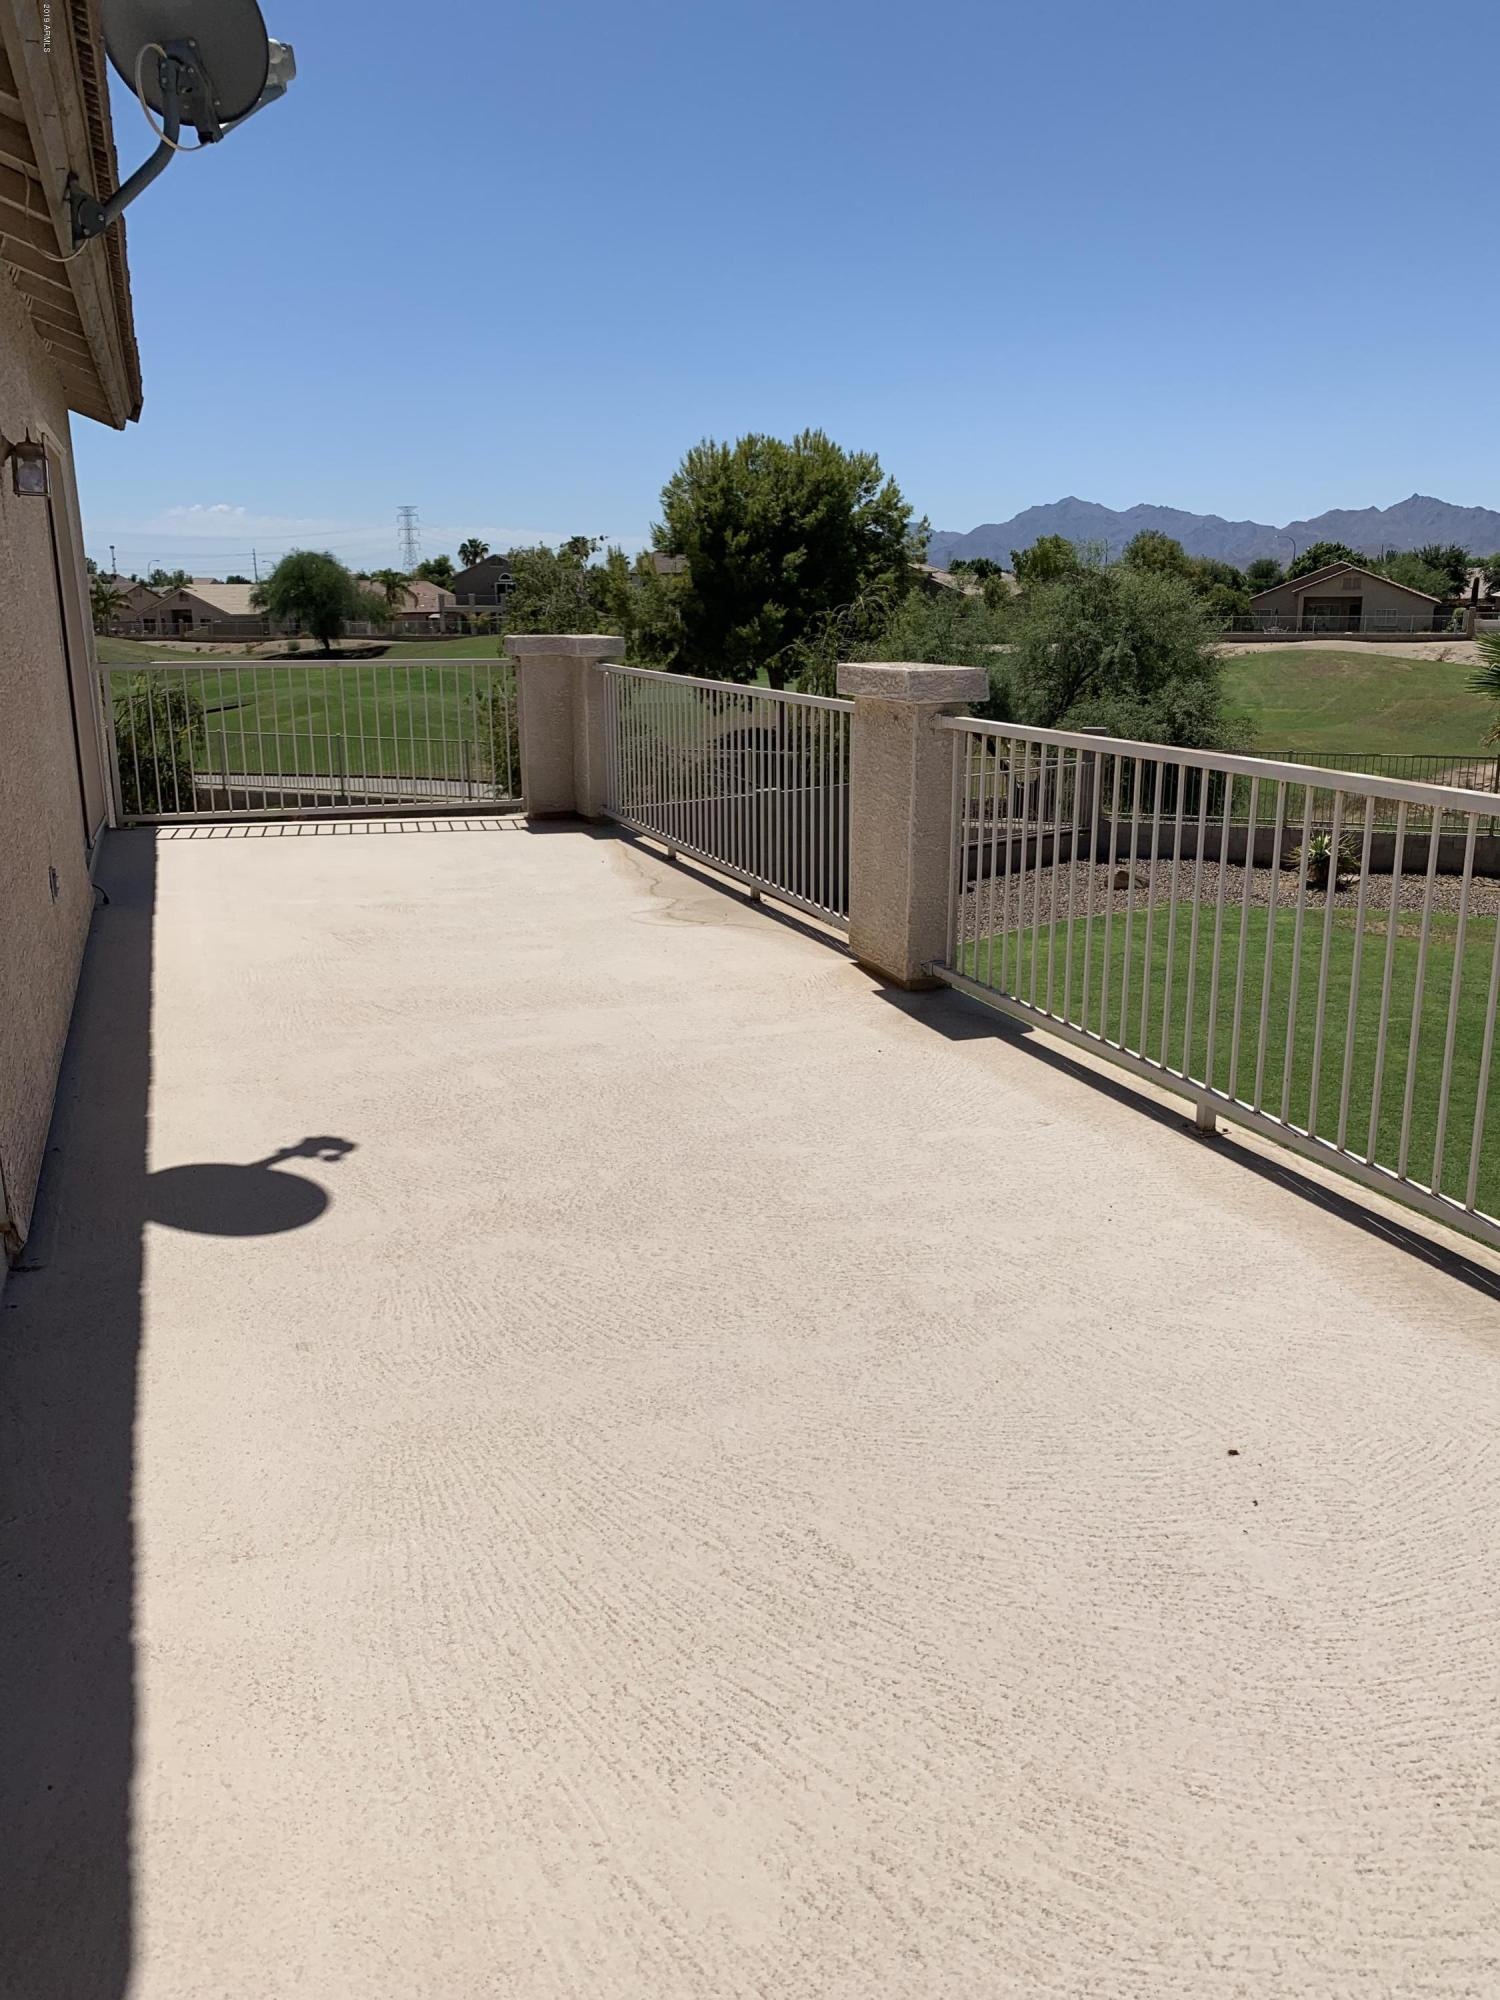 MLS 5970118 2 N 122ND Lane, Avondale, AZ 85323 Avondale AZ RV Park